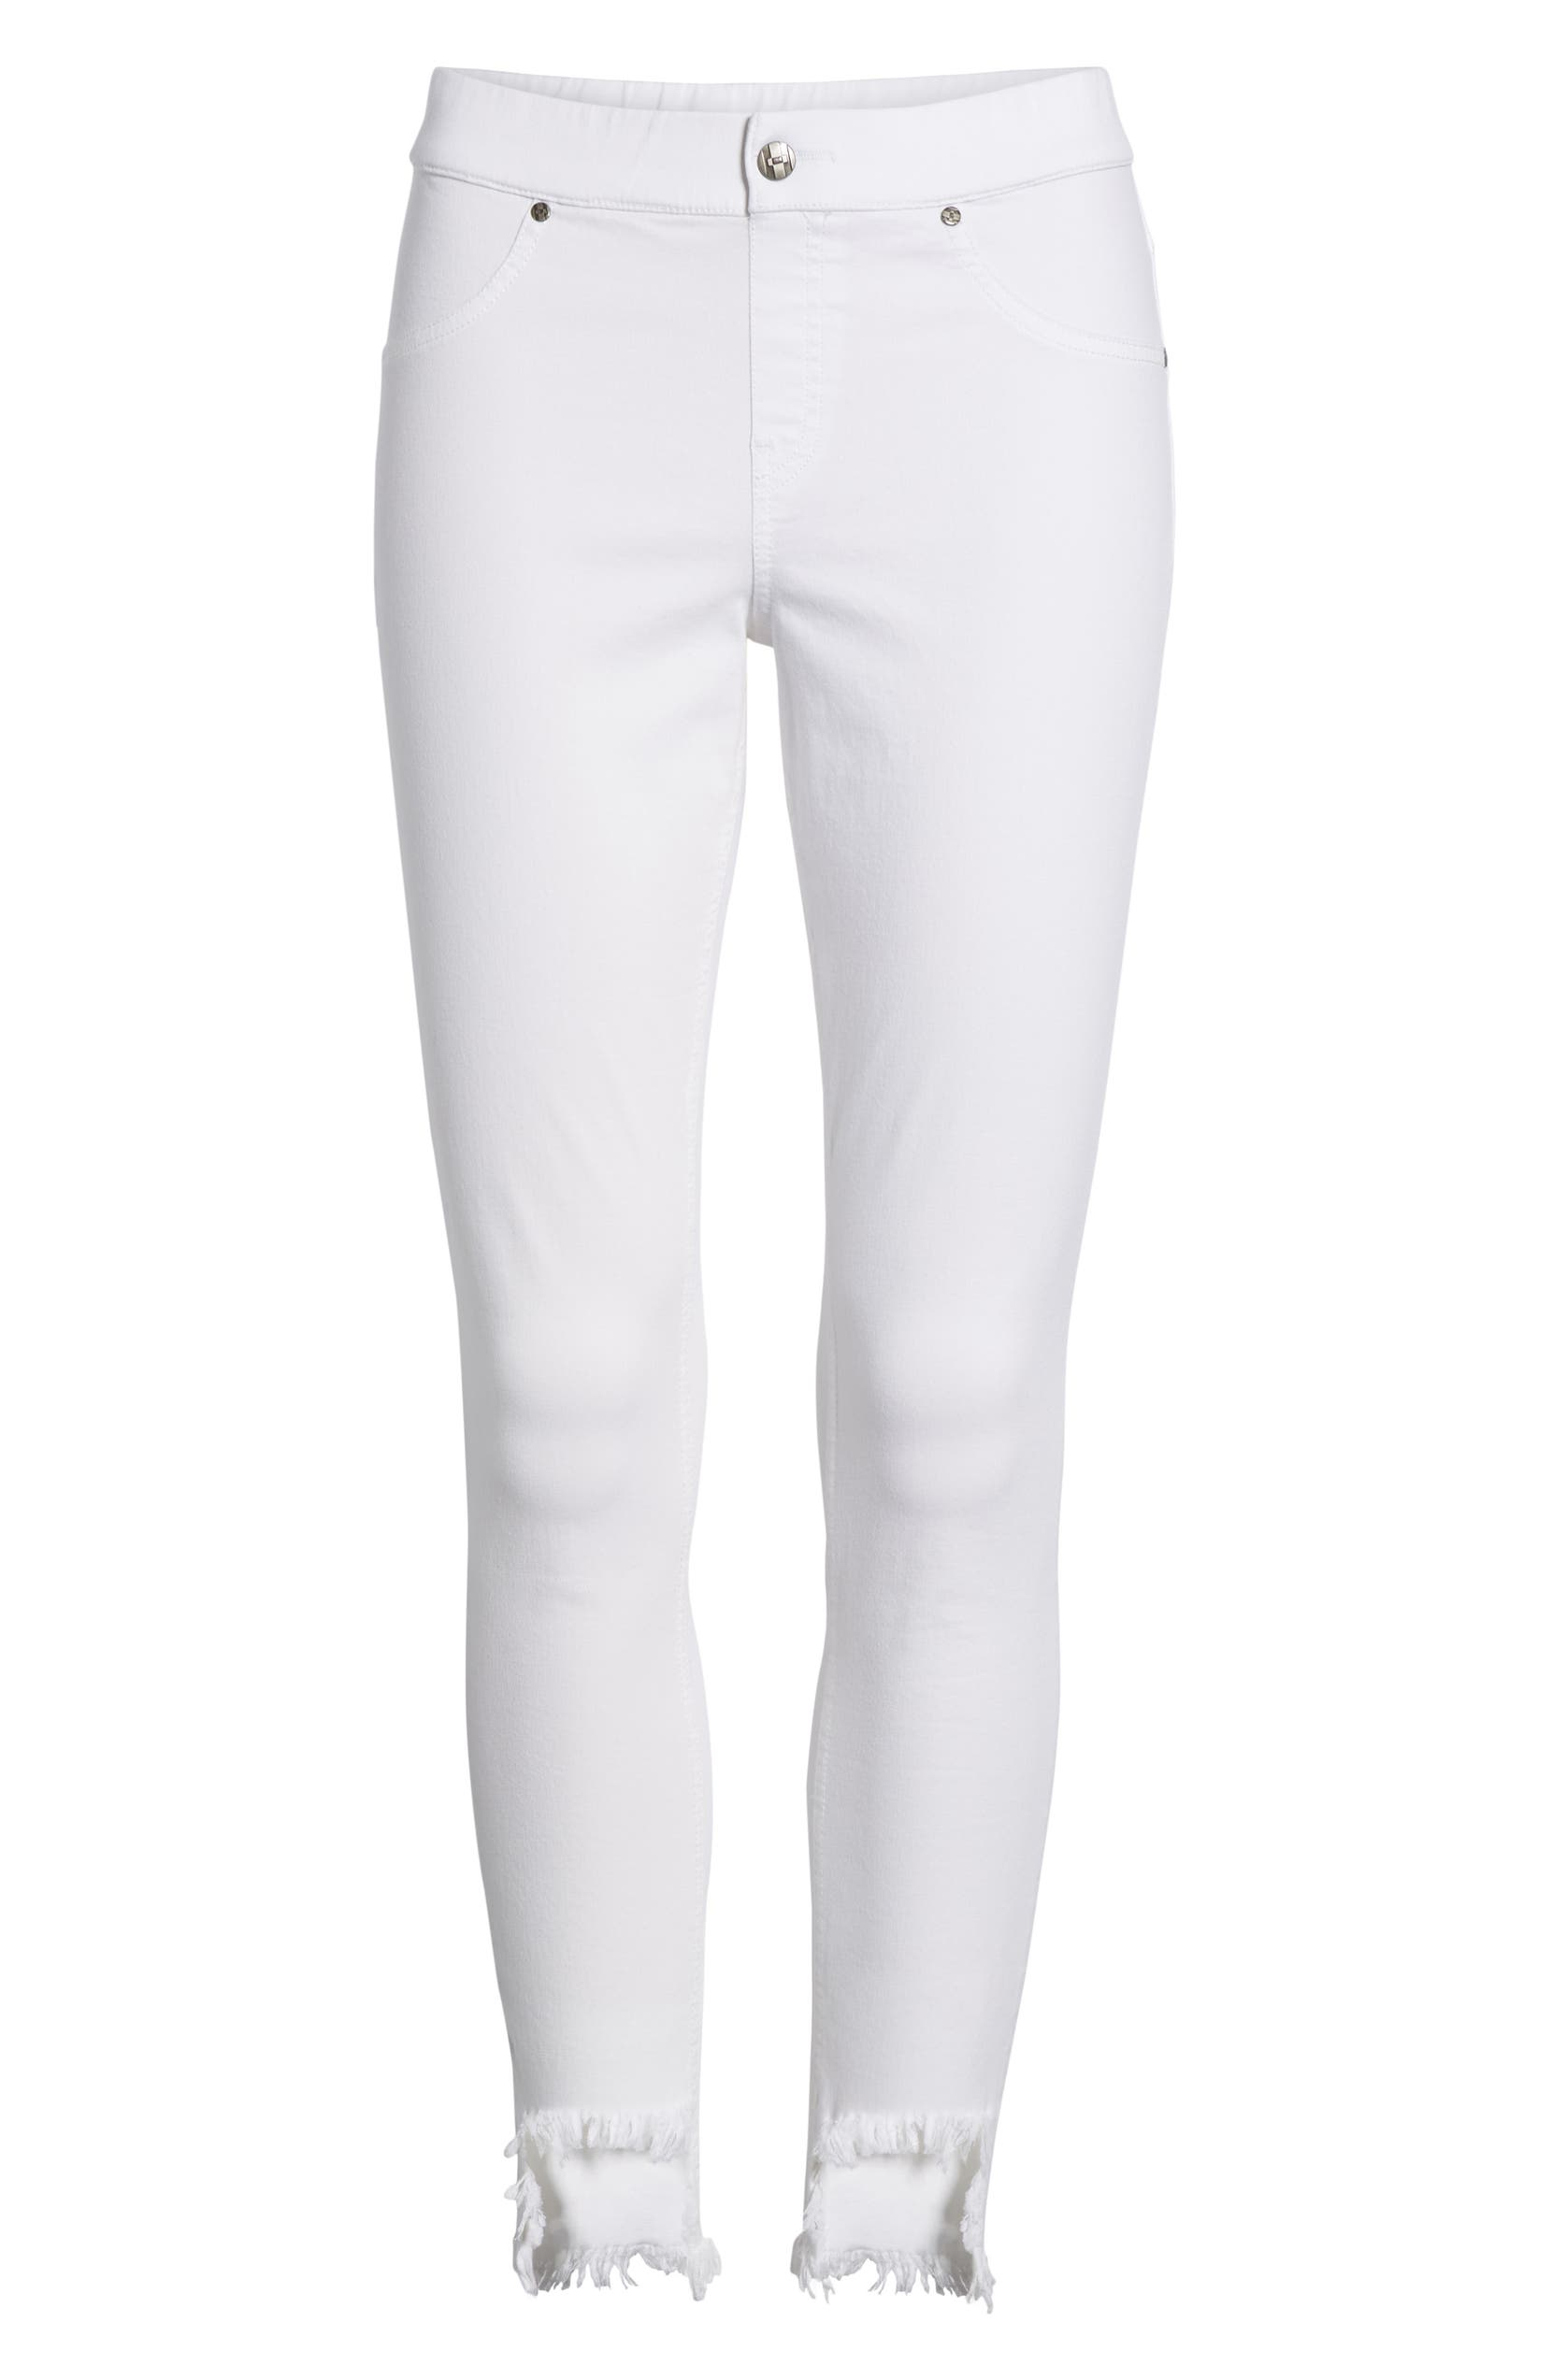 8521cb6ac175a5 Hue Shipwrecked Denim Skimmer Leggings | Nordstrom